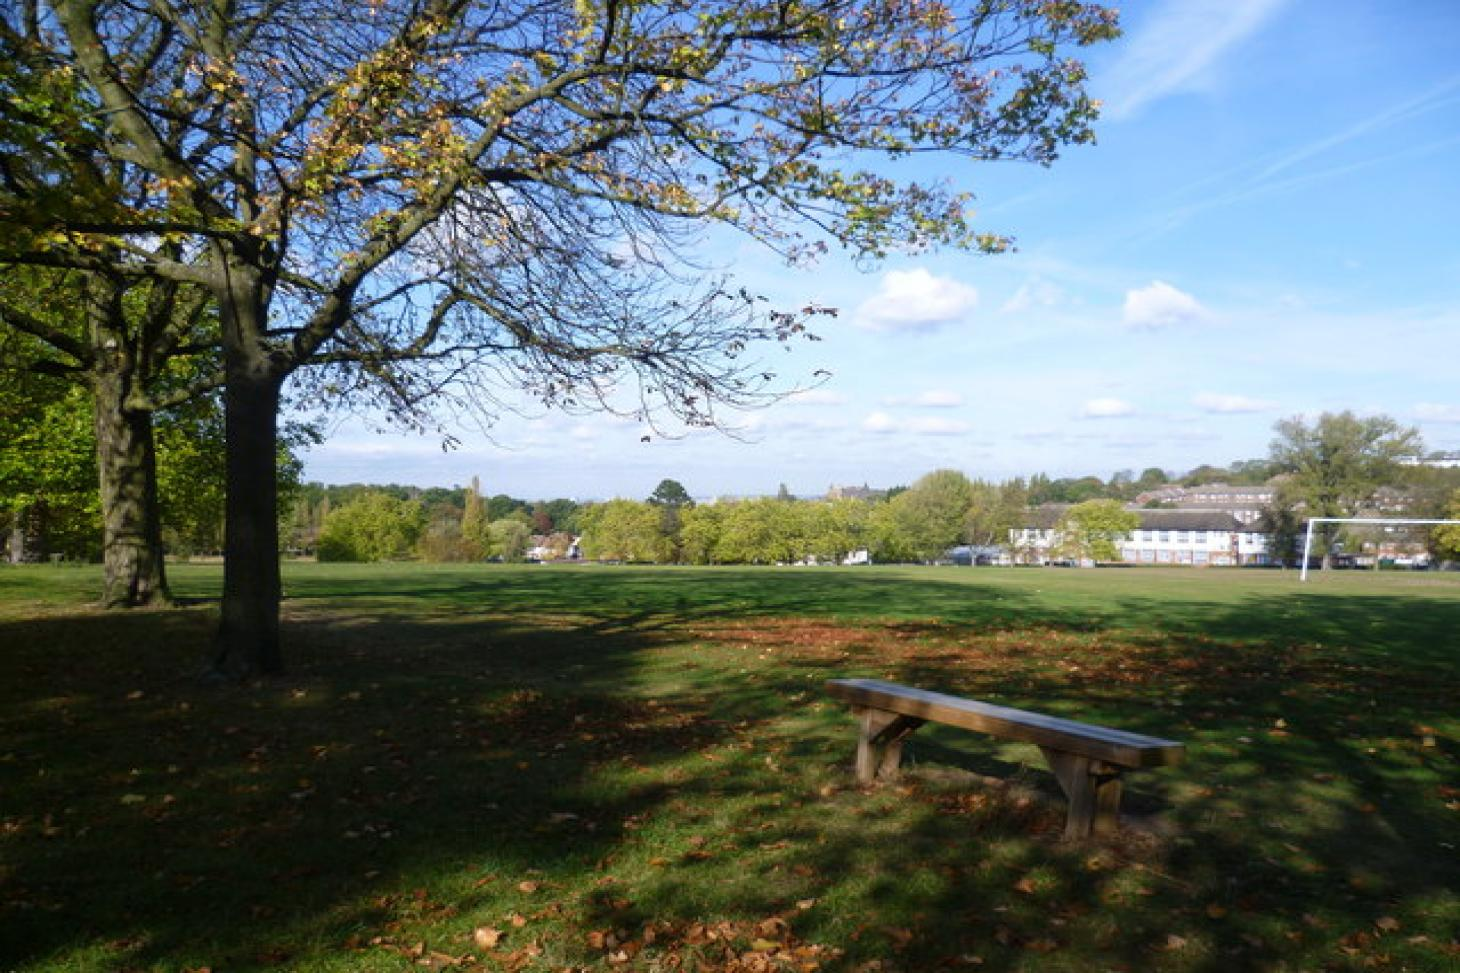 Upper Norwood Recreation Ground 5 a side | Grass football pitch